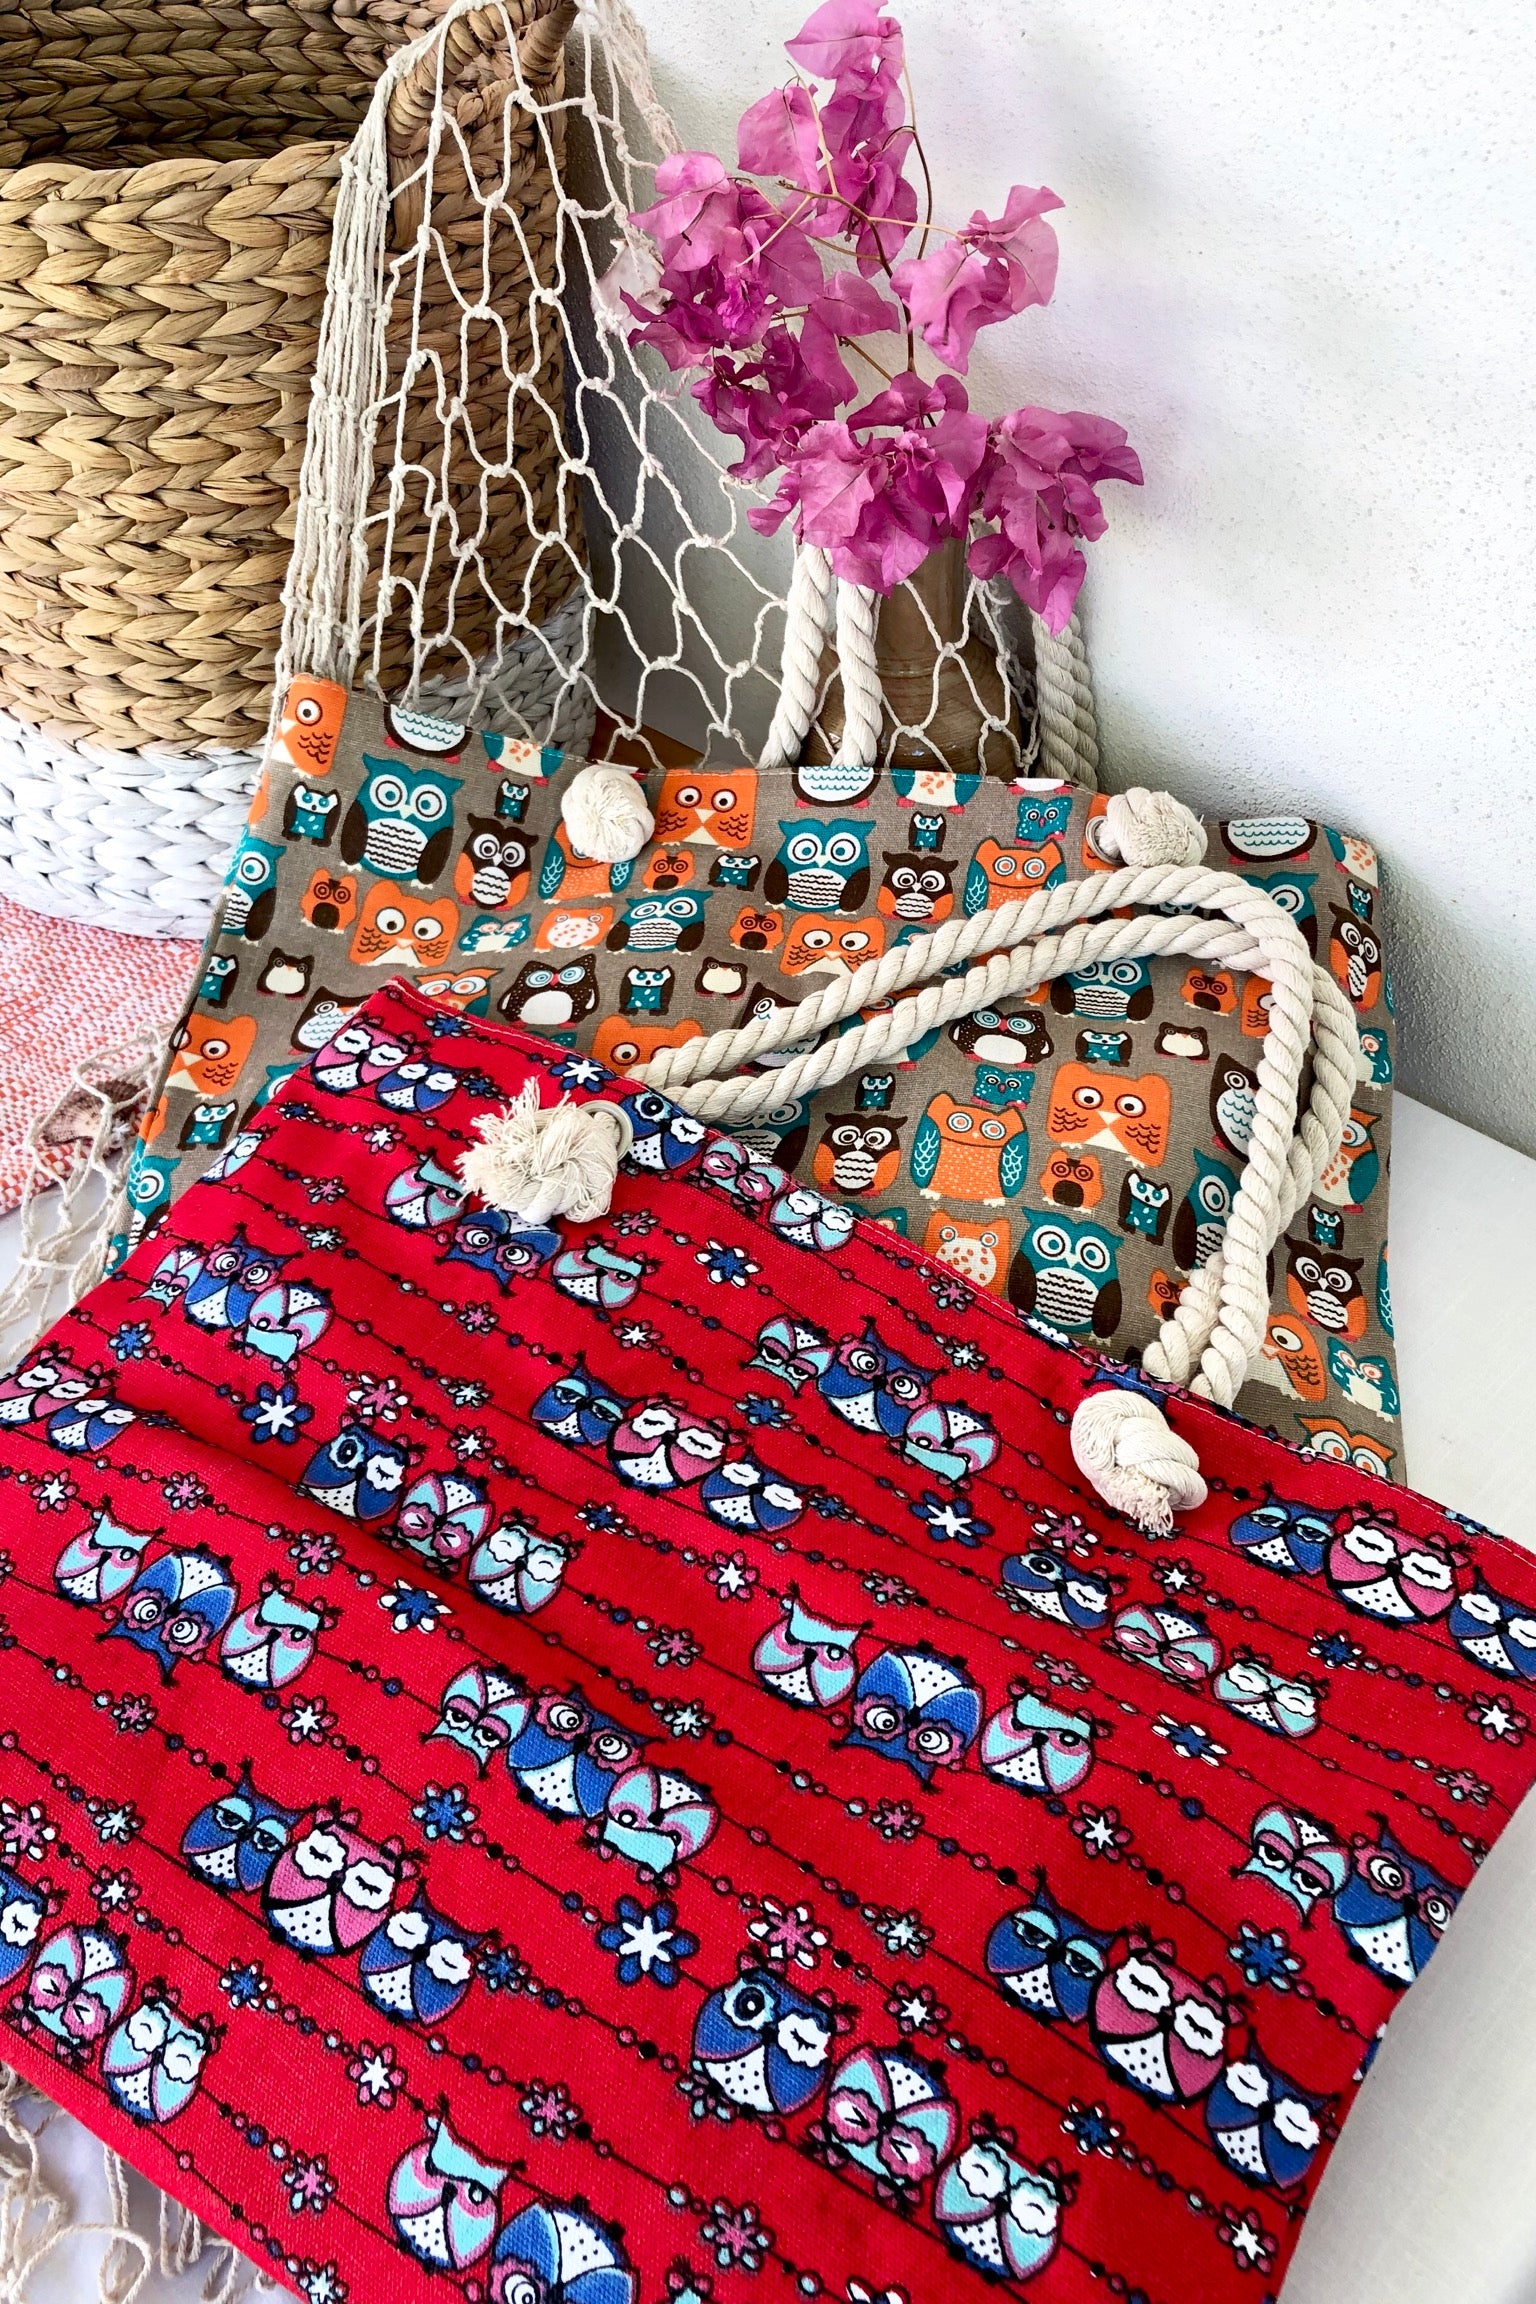 Yeah Canvas Beach Bag Owls in Red or Orange